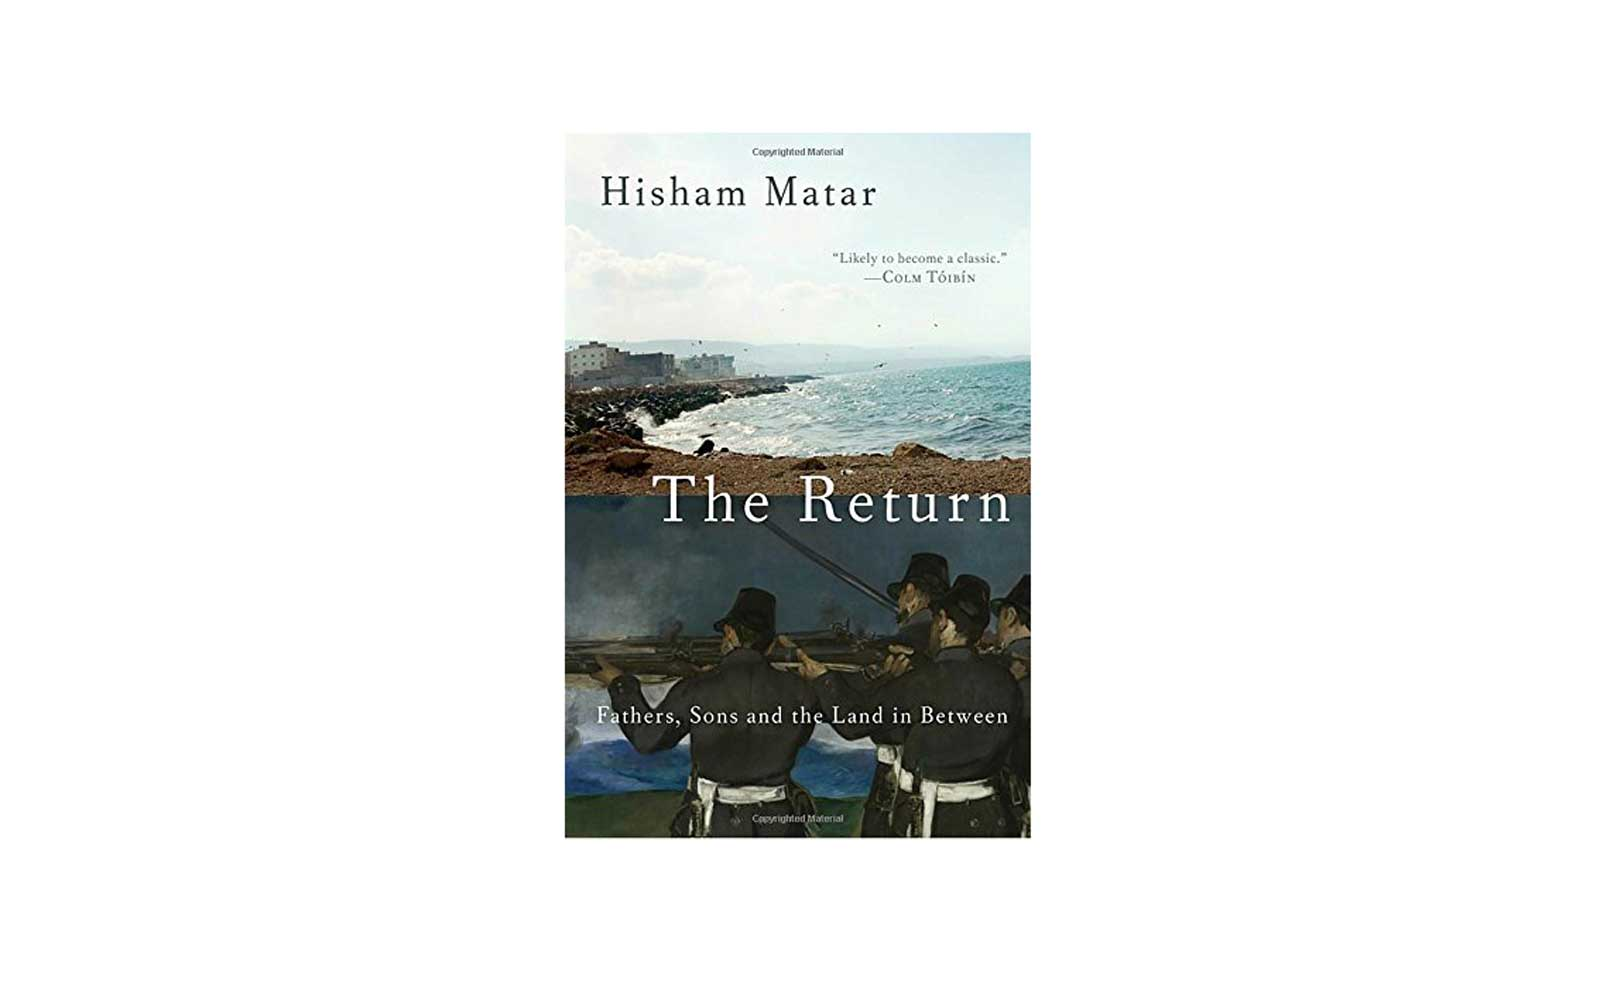 The Return - Hirsham Matar